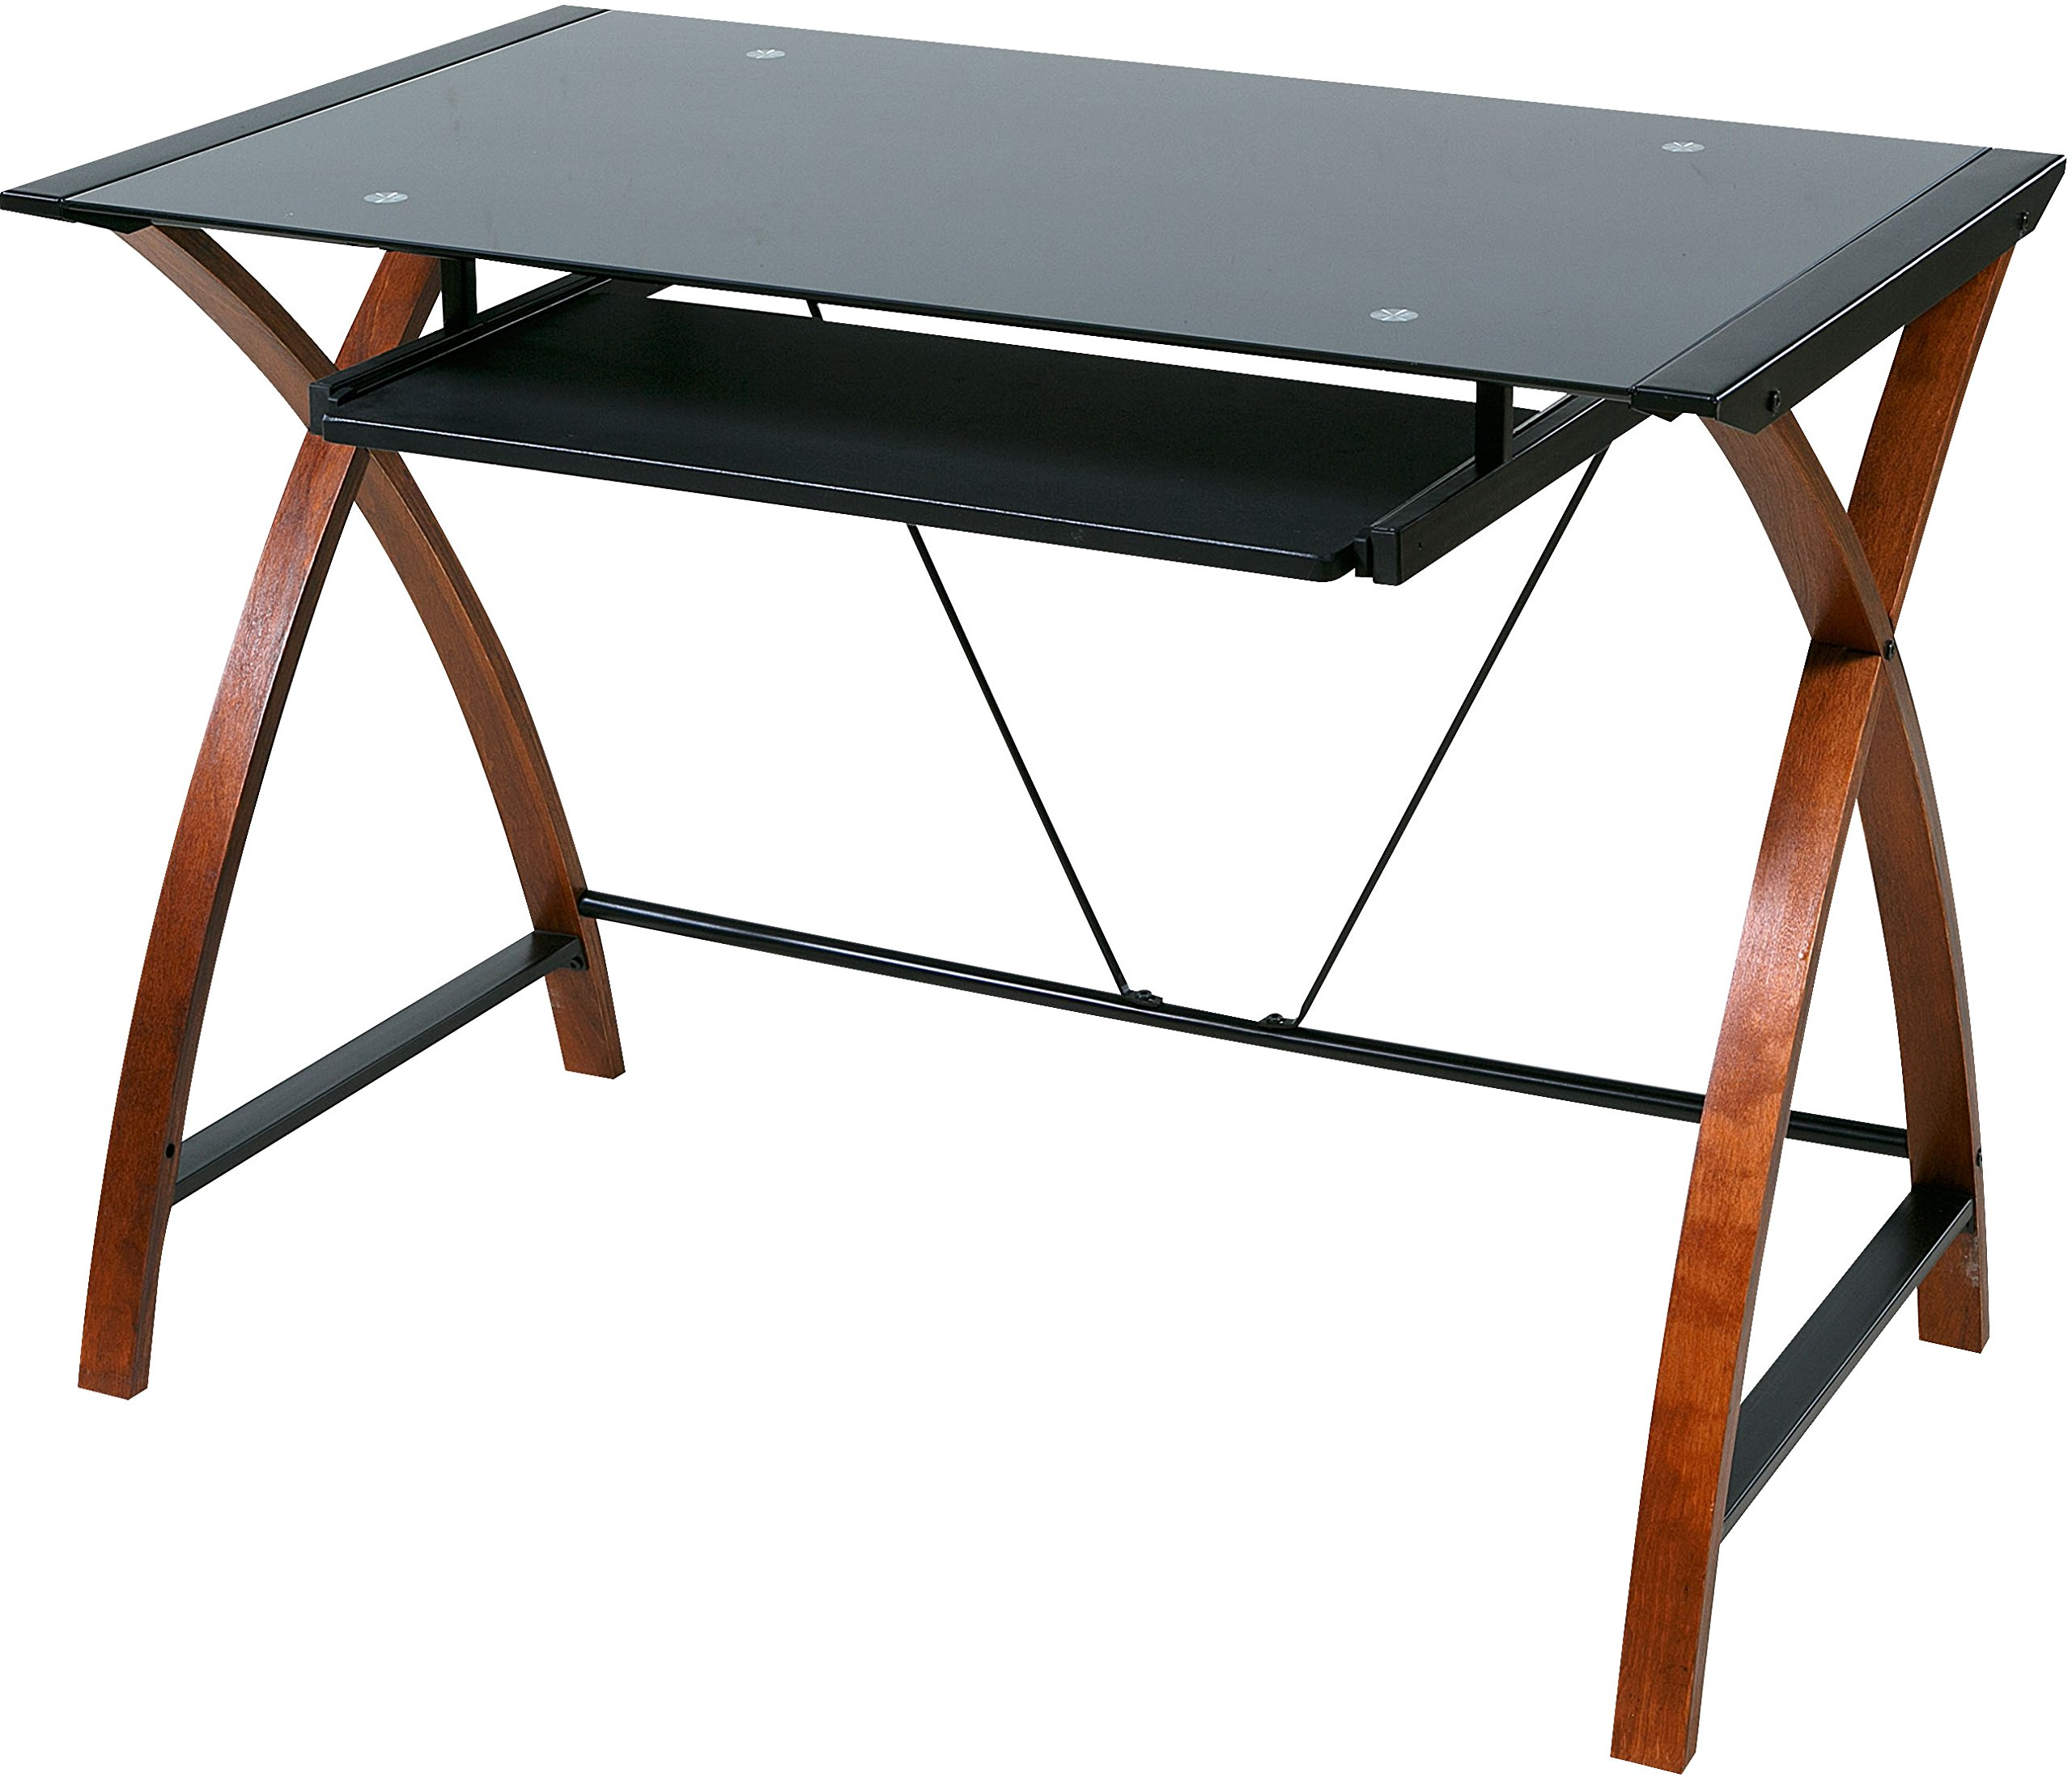 9d417e5f7a3 Get Quotations · OneSpace Glass and Wood Computer Desk with Pullout  Keyboard Tray